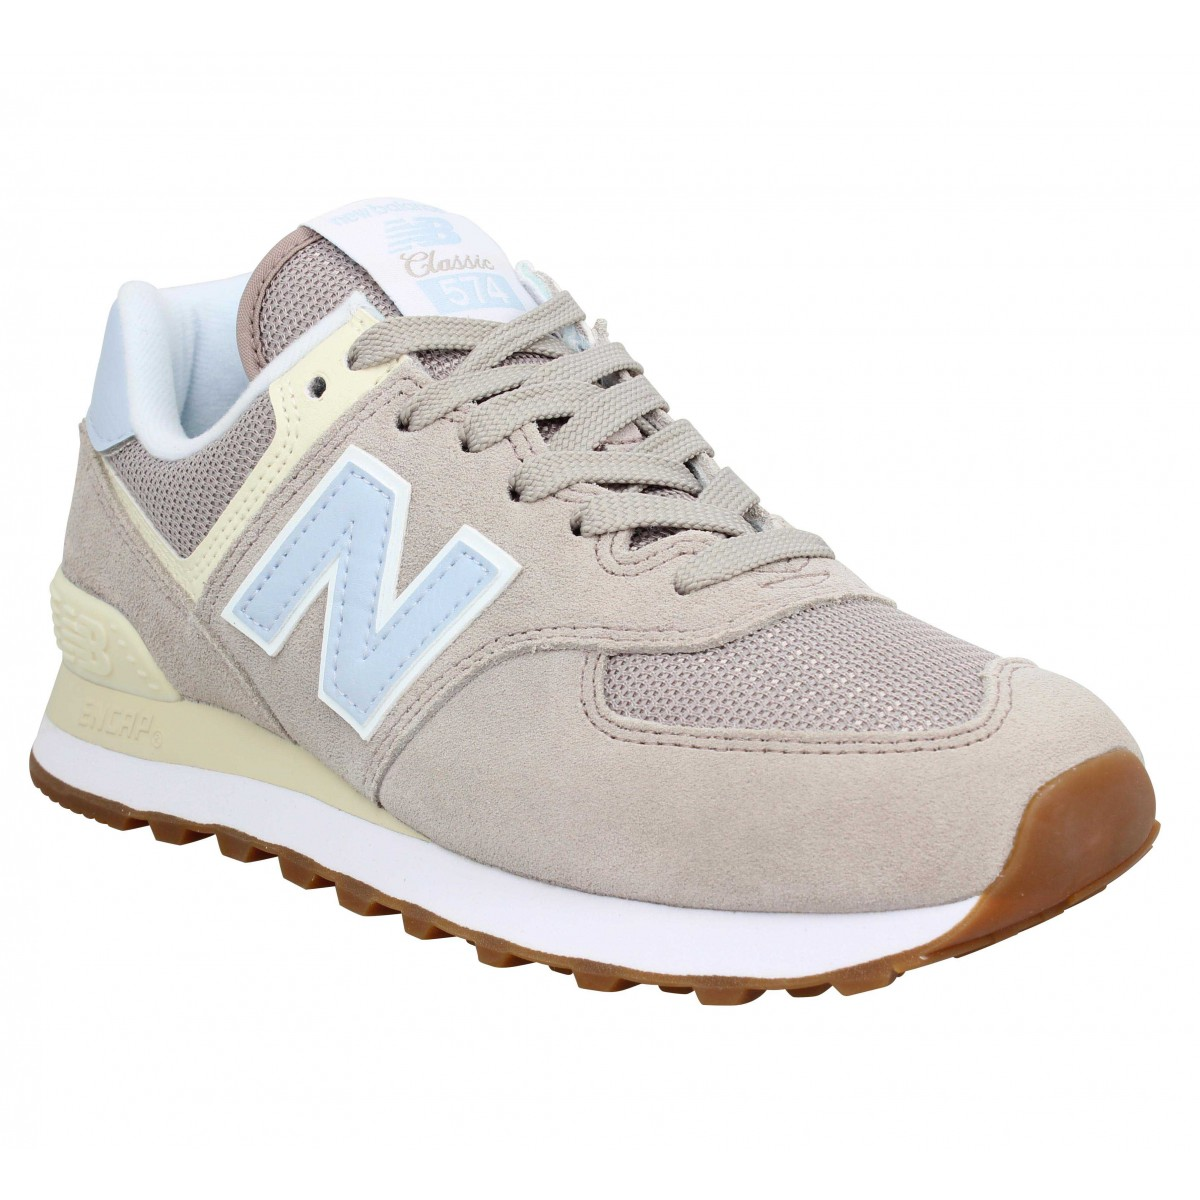 NEW BALANCE 574 velours Femme Rose Clair